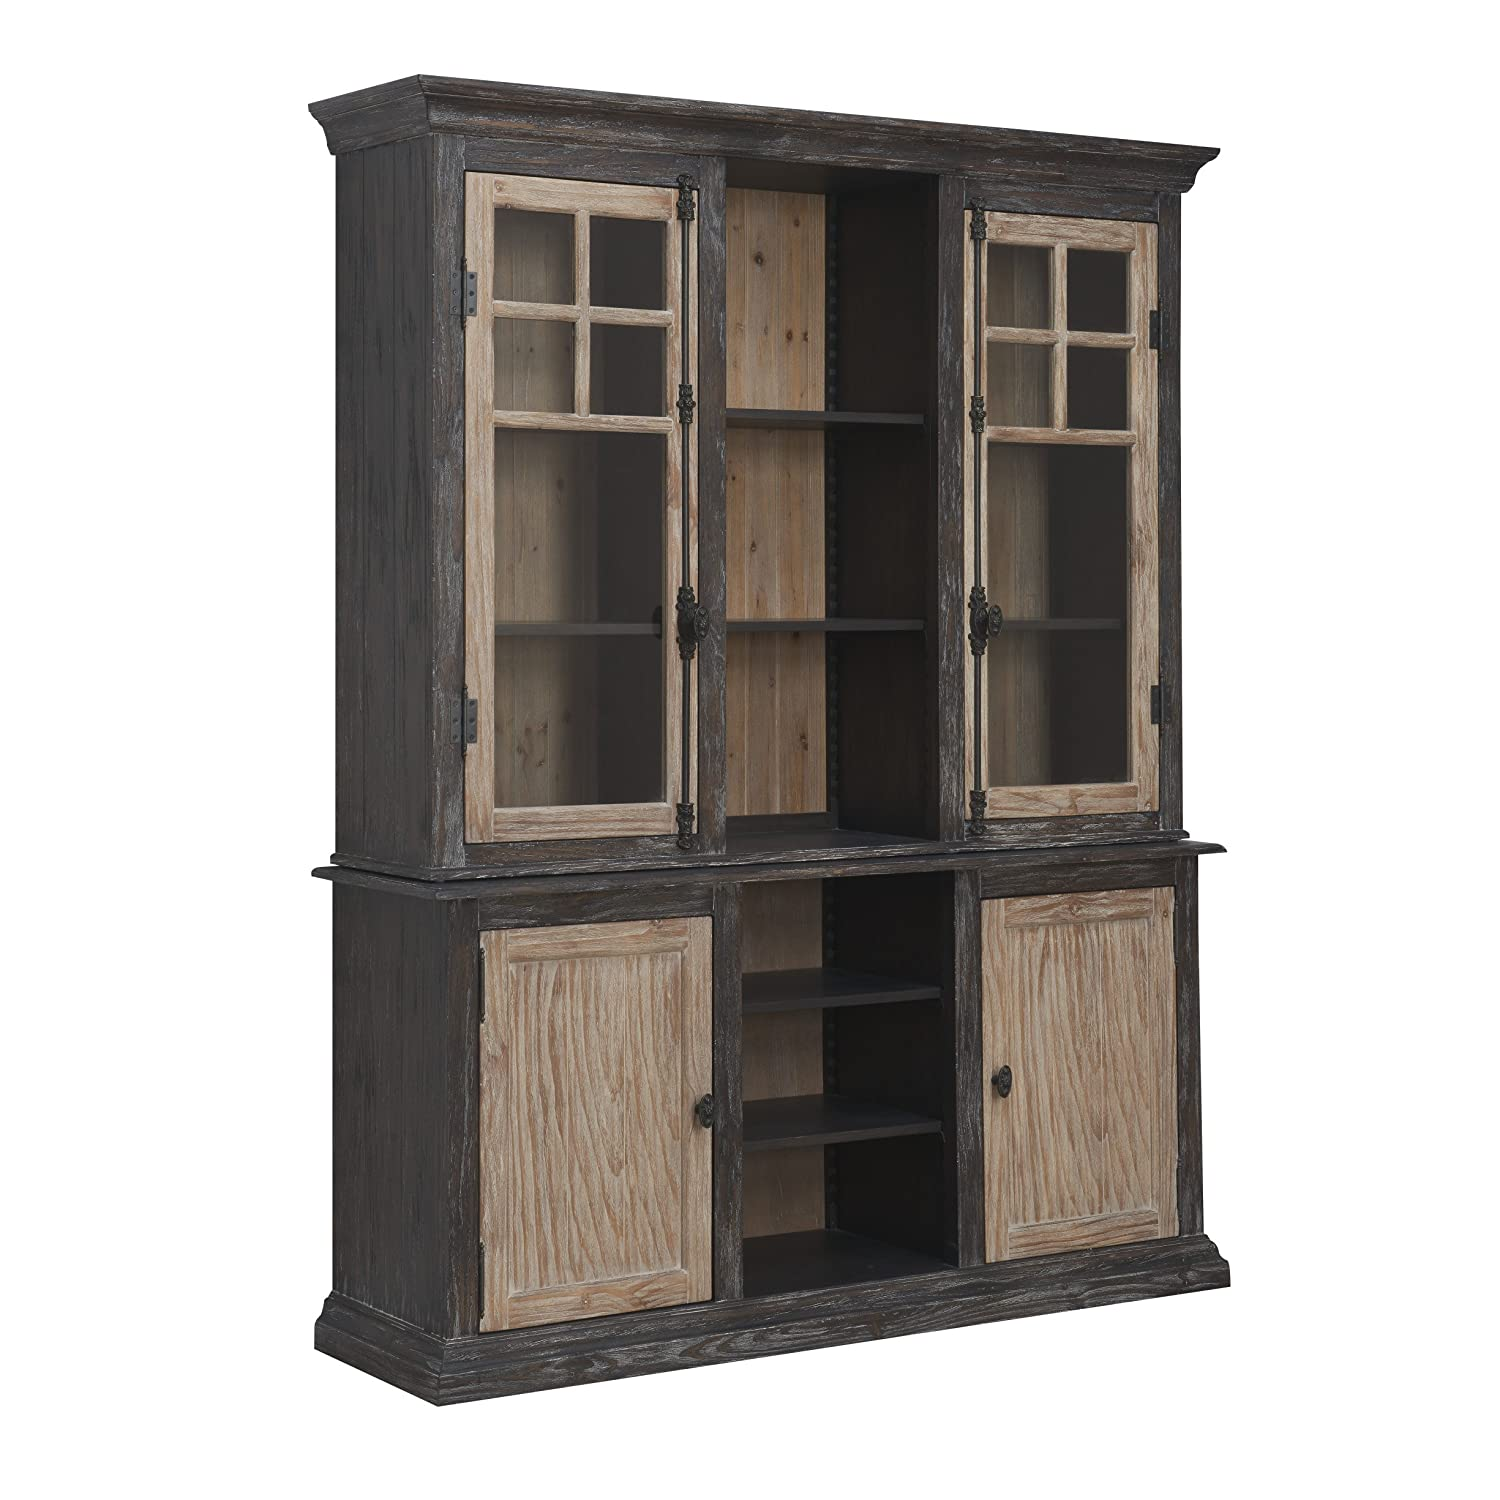 Captivating Amazon.com   Emerald Home Barcelona Dark Brown And Rustic Pine Hutch With  Glass Doors And Display Shelves   Tables